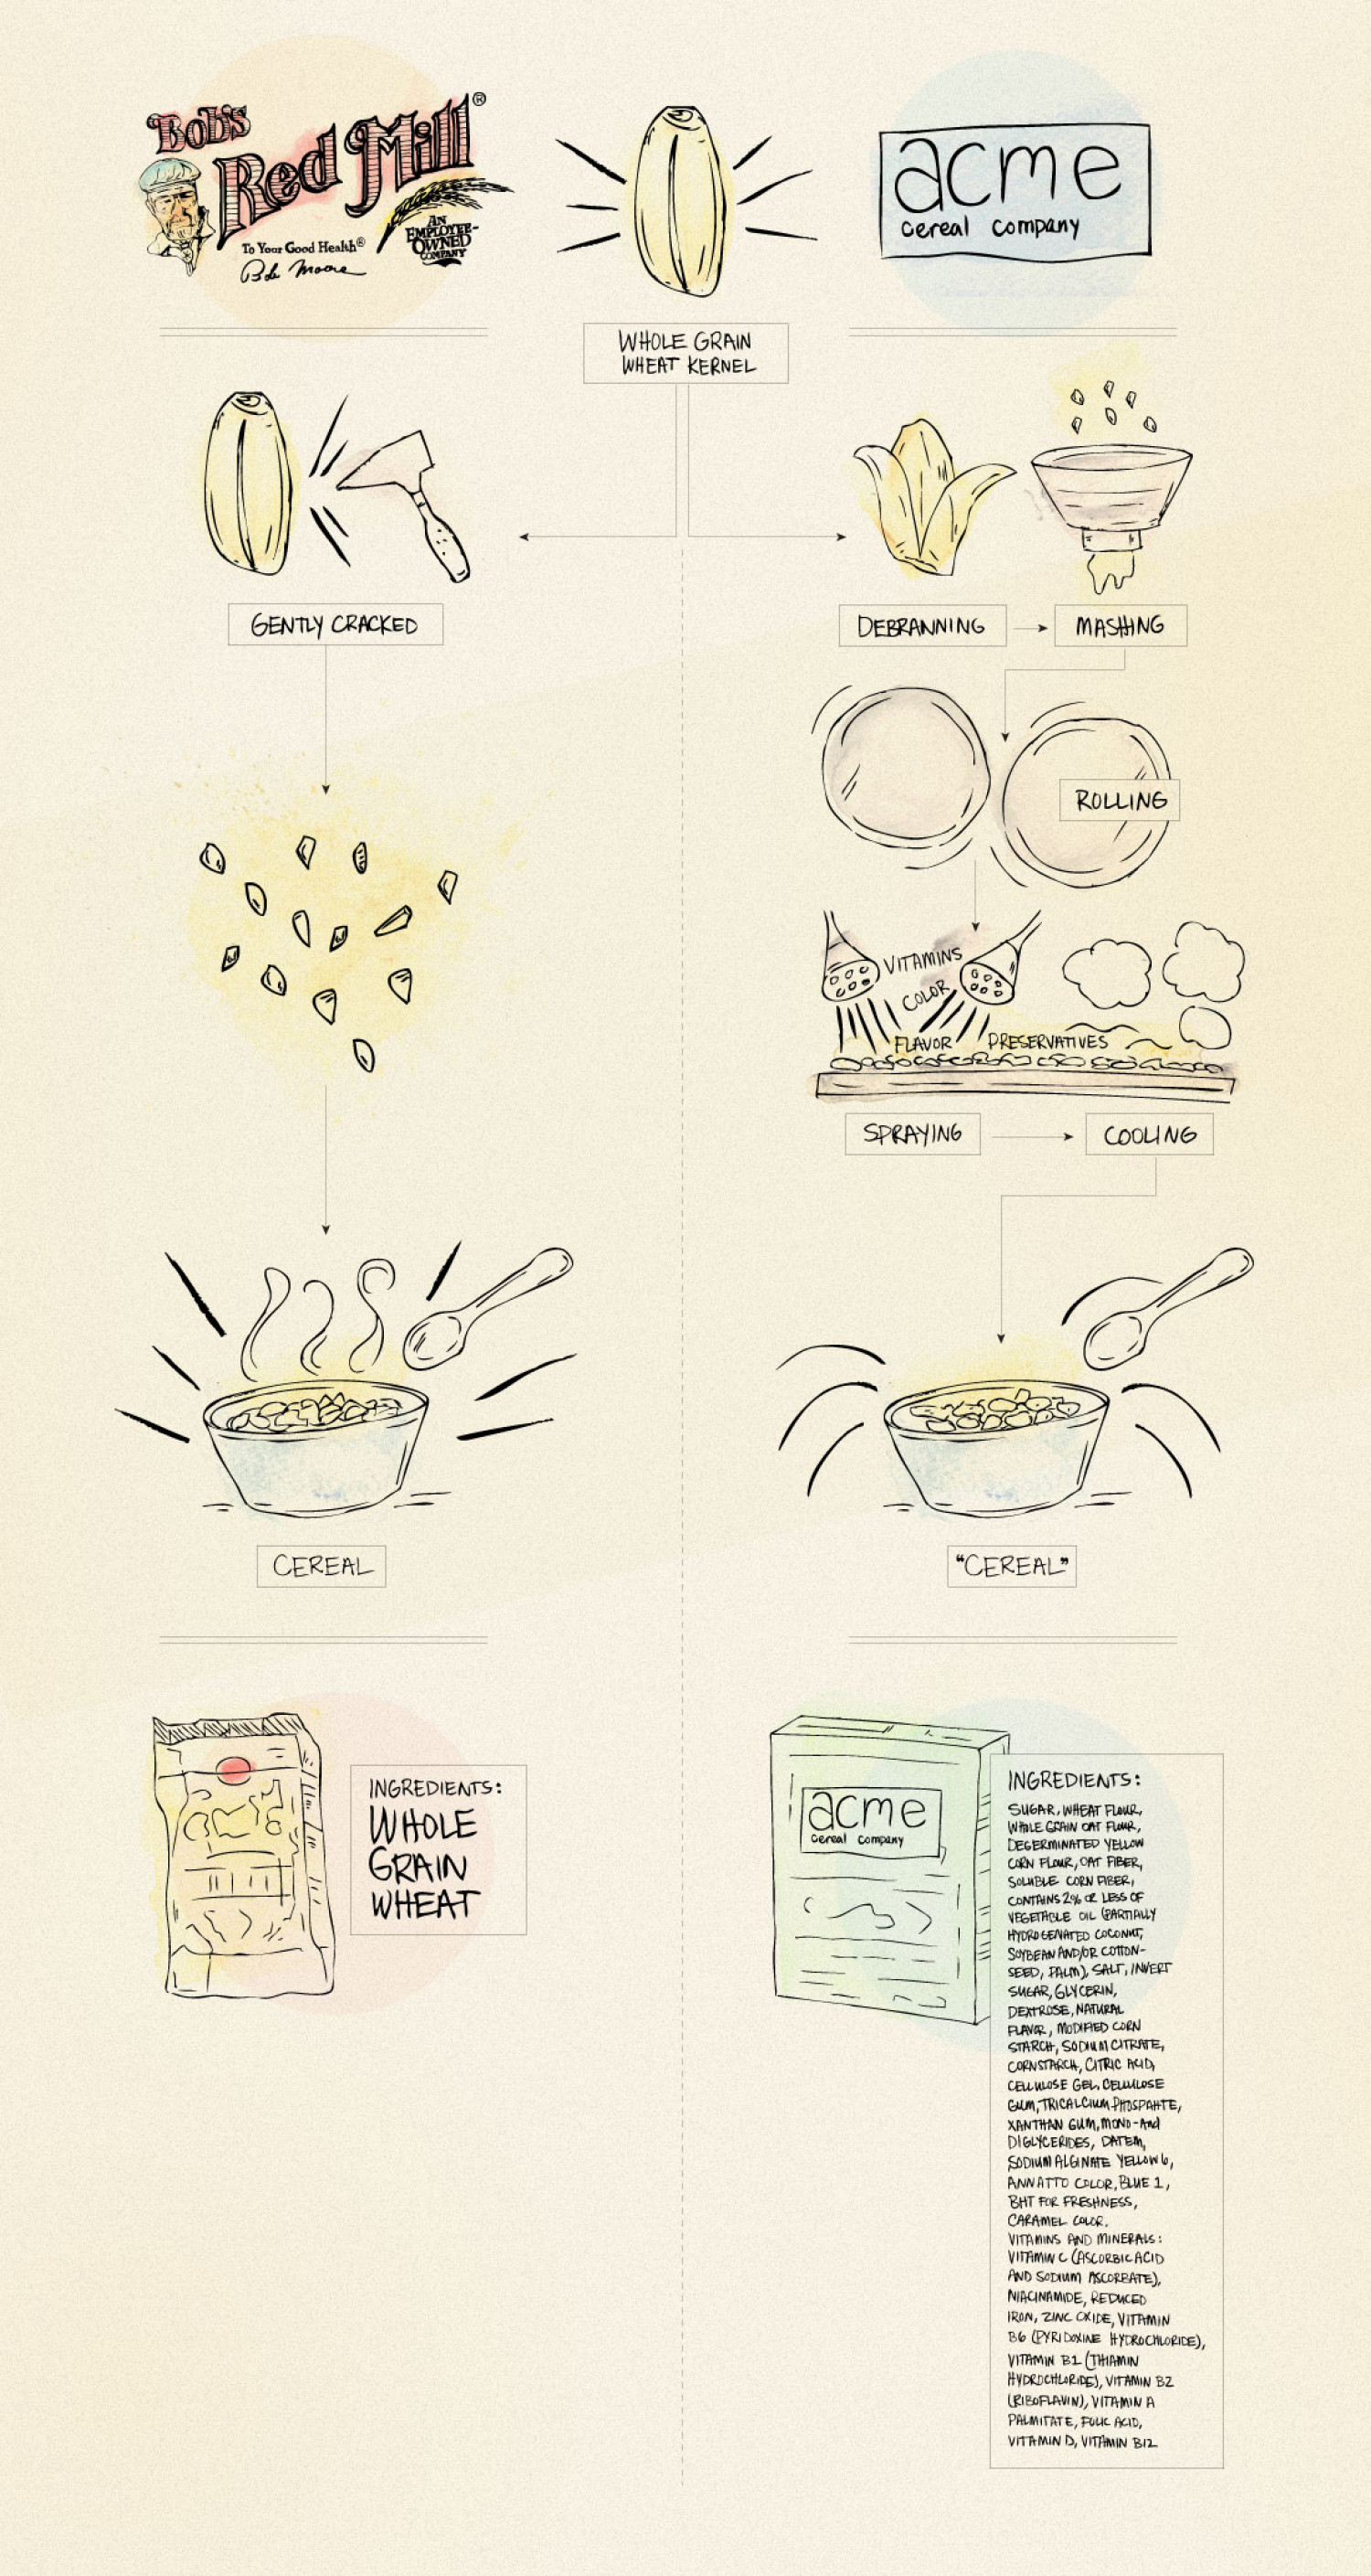 Bob's Red Mill cereal Infographic